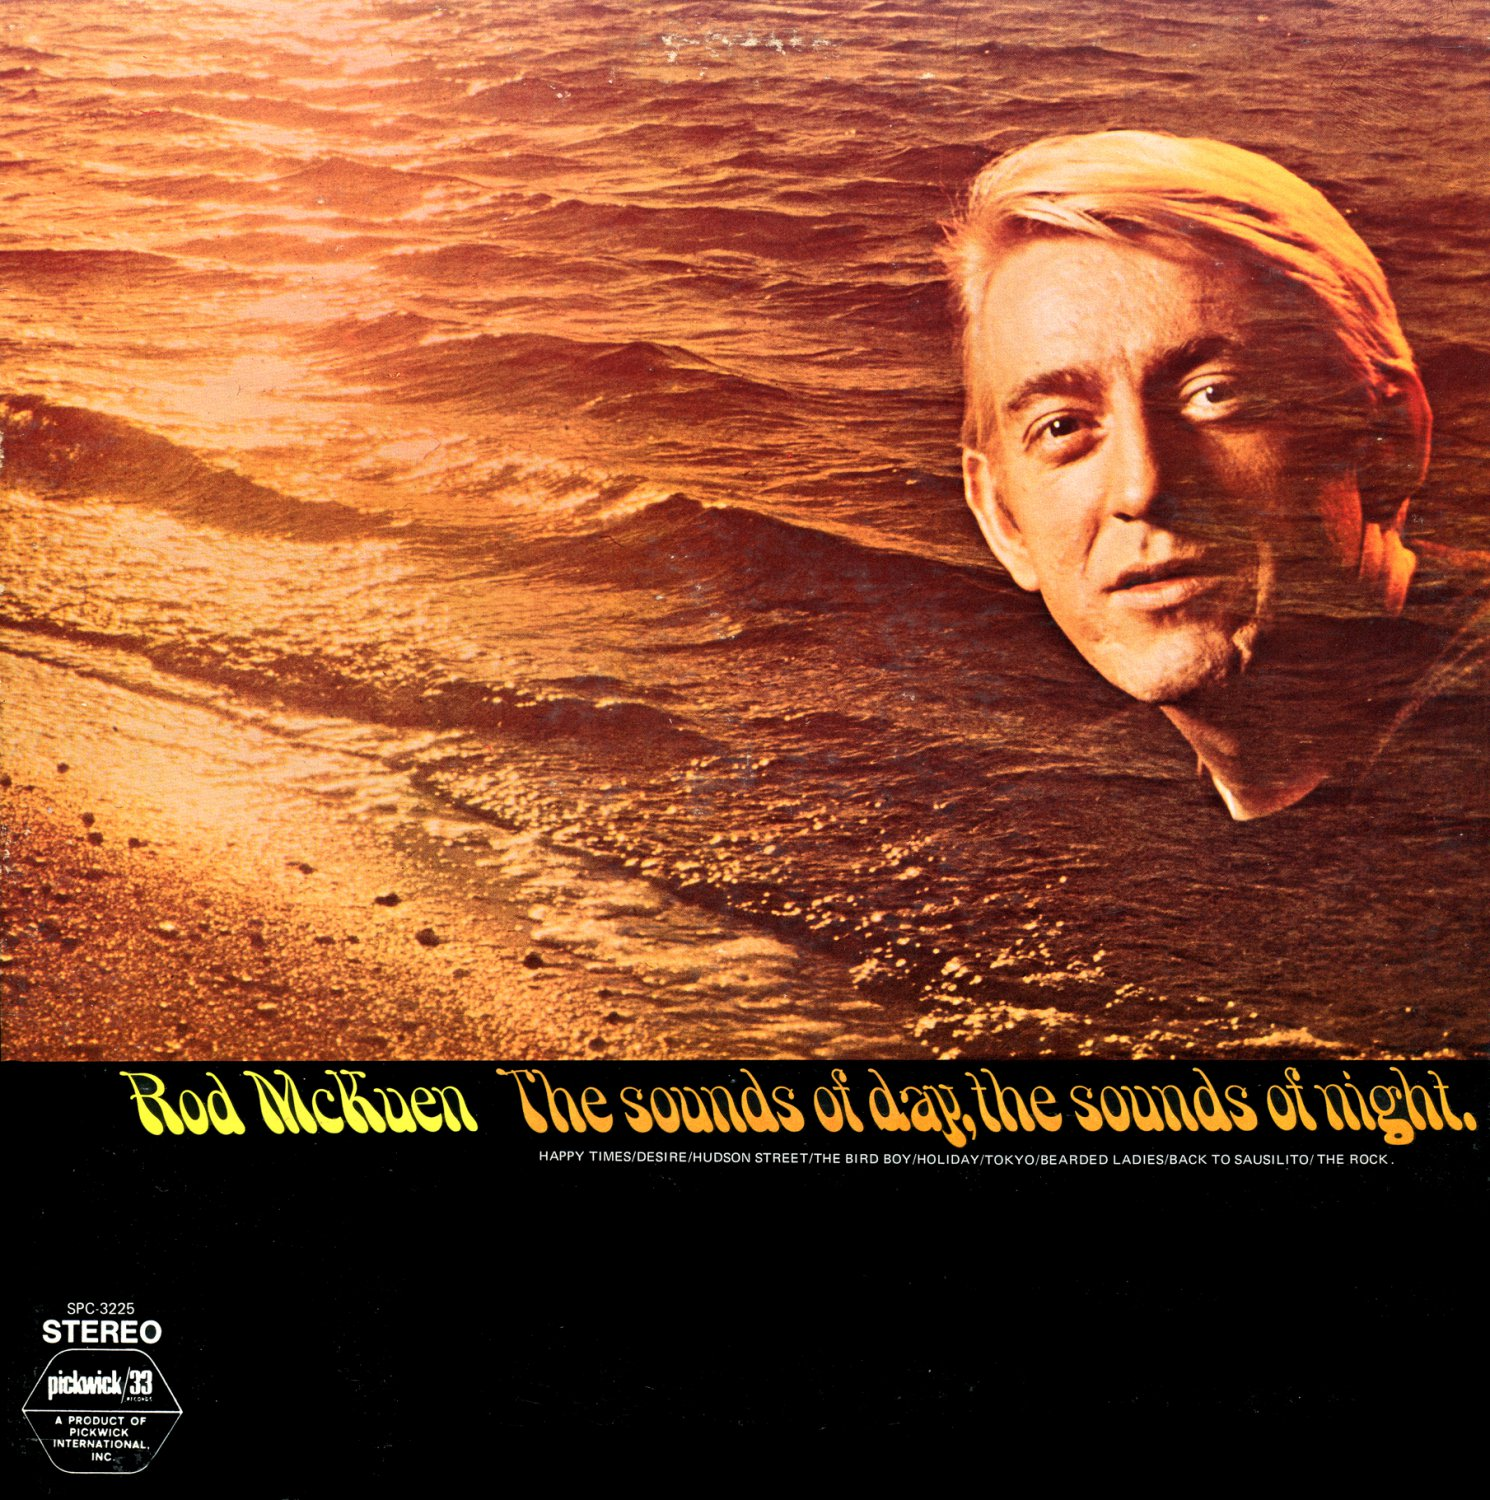 The Sounds Of Day, The Sounds Of Night - Rod McKuen LP/CD